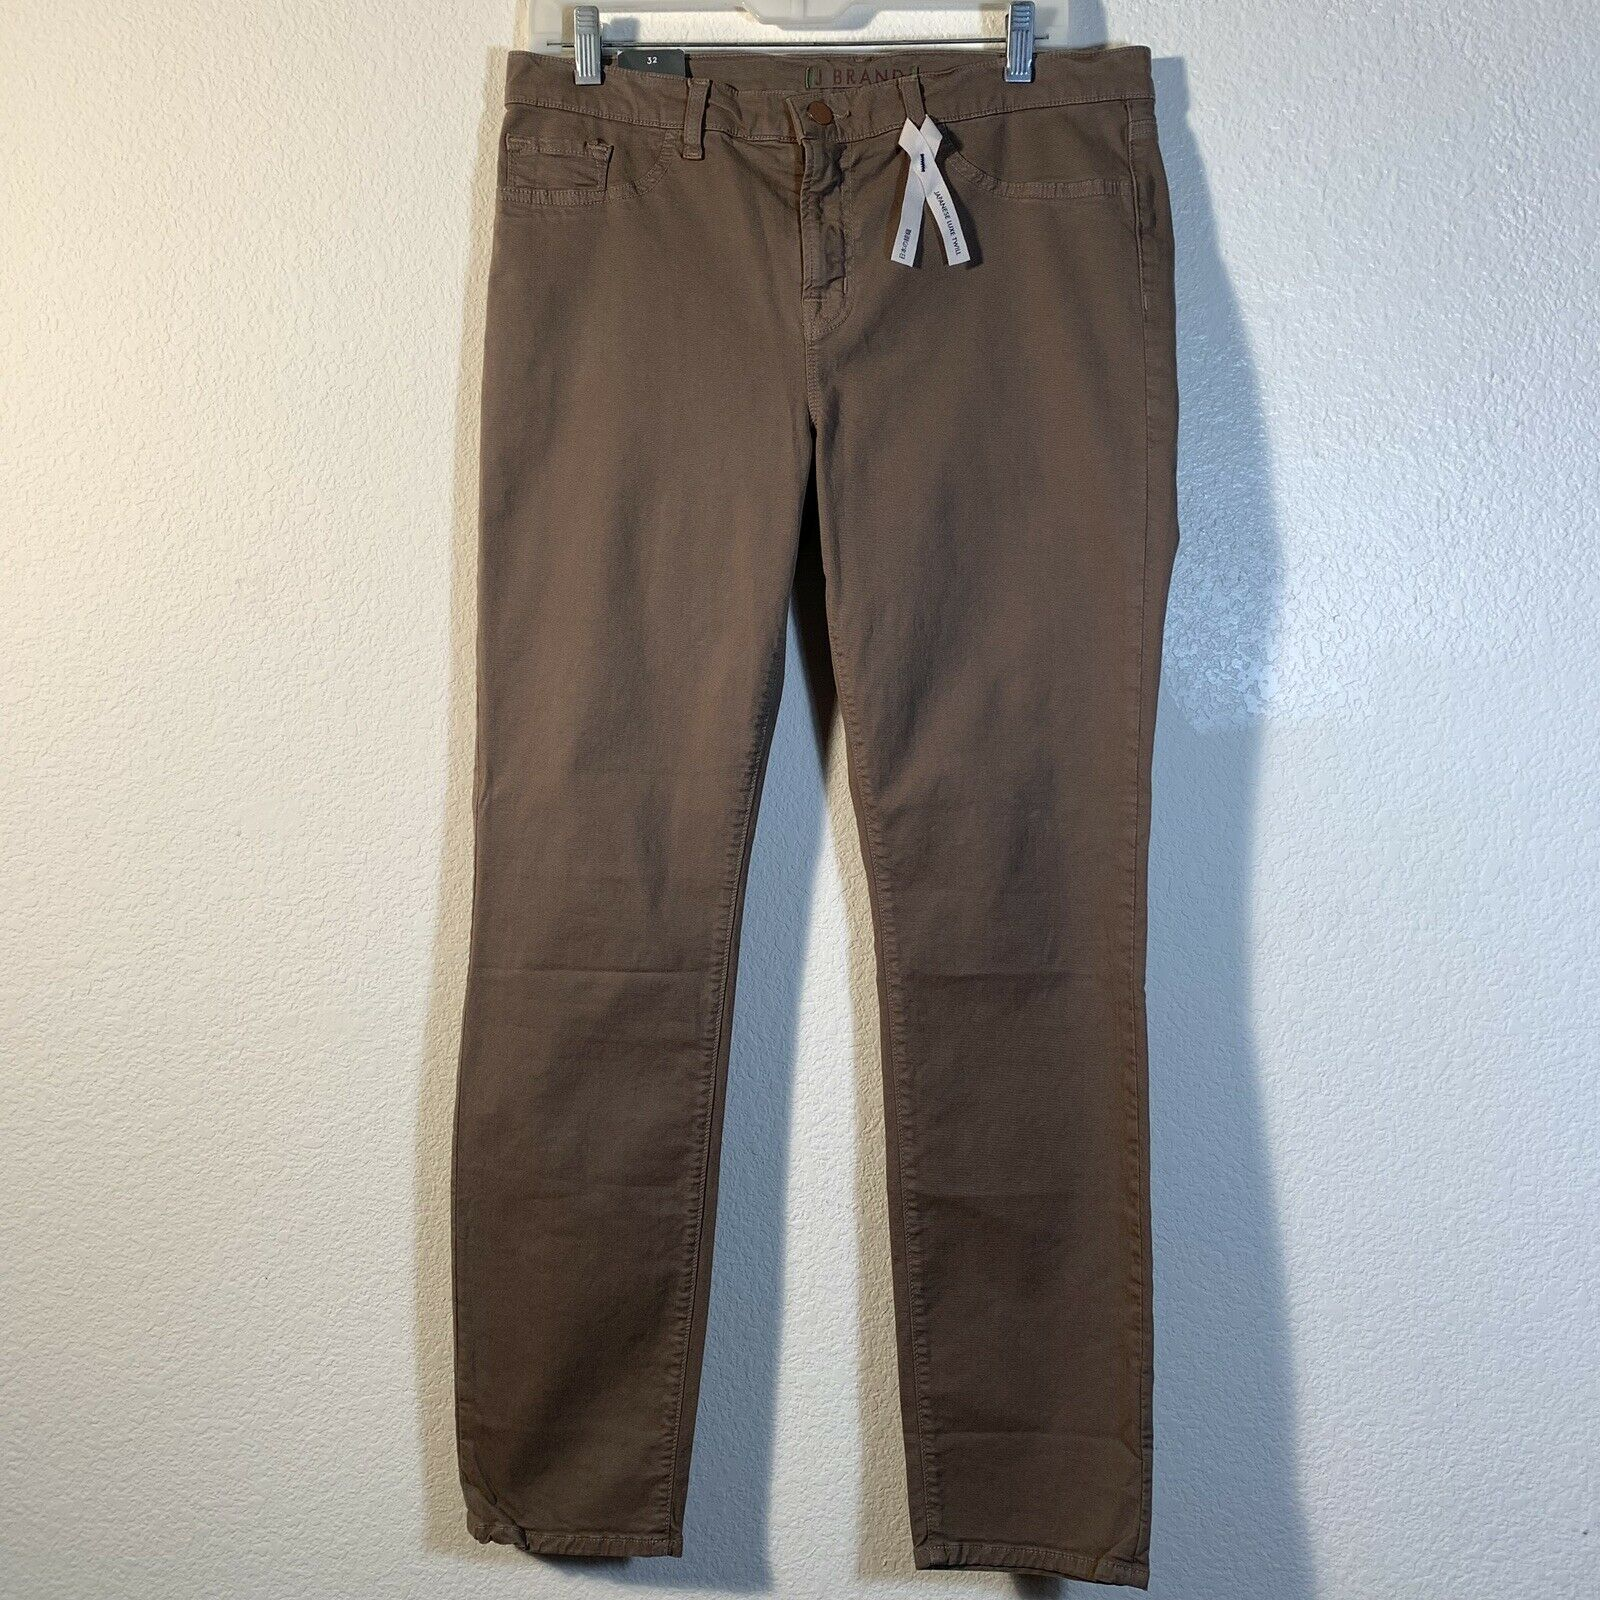 J Brand Taupe Japanese Luxe Twill Skinny Mid Rise Jeans Sz 32  NEW